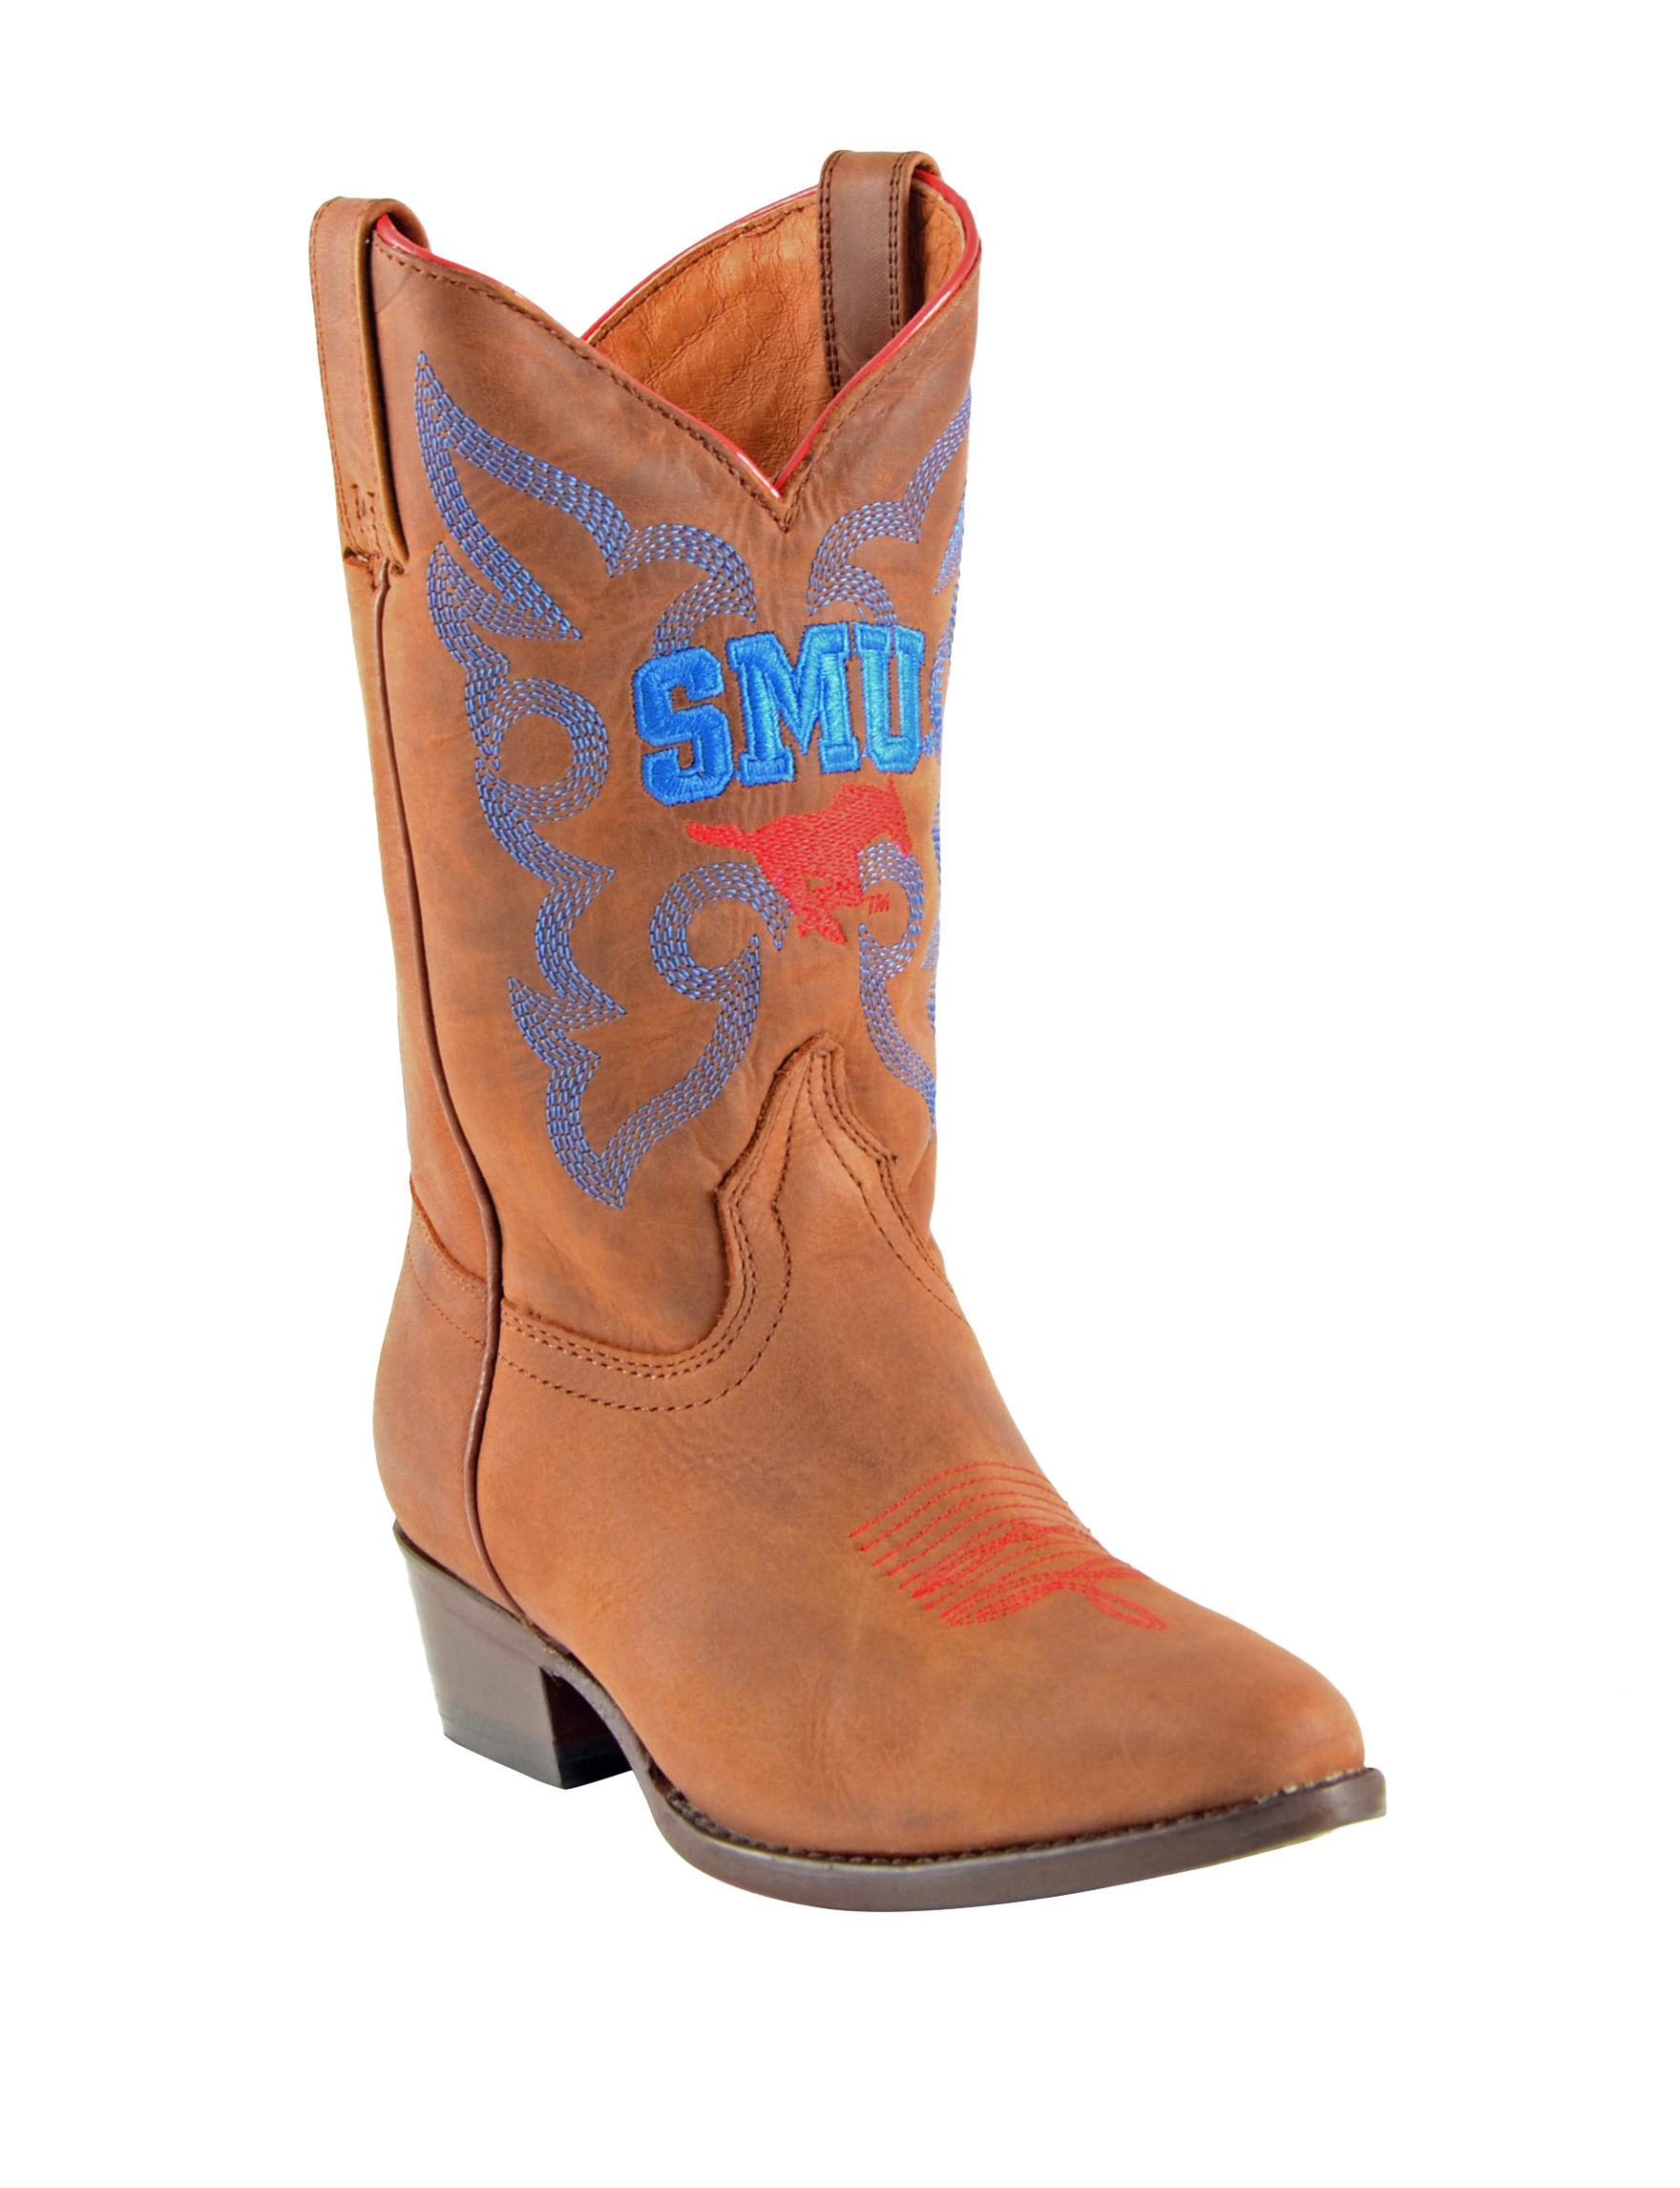 Gameday Boots Brown